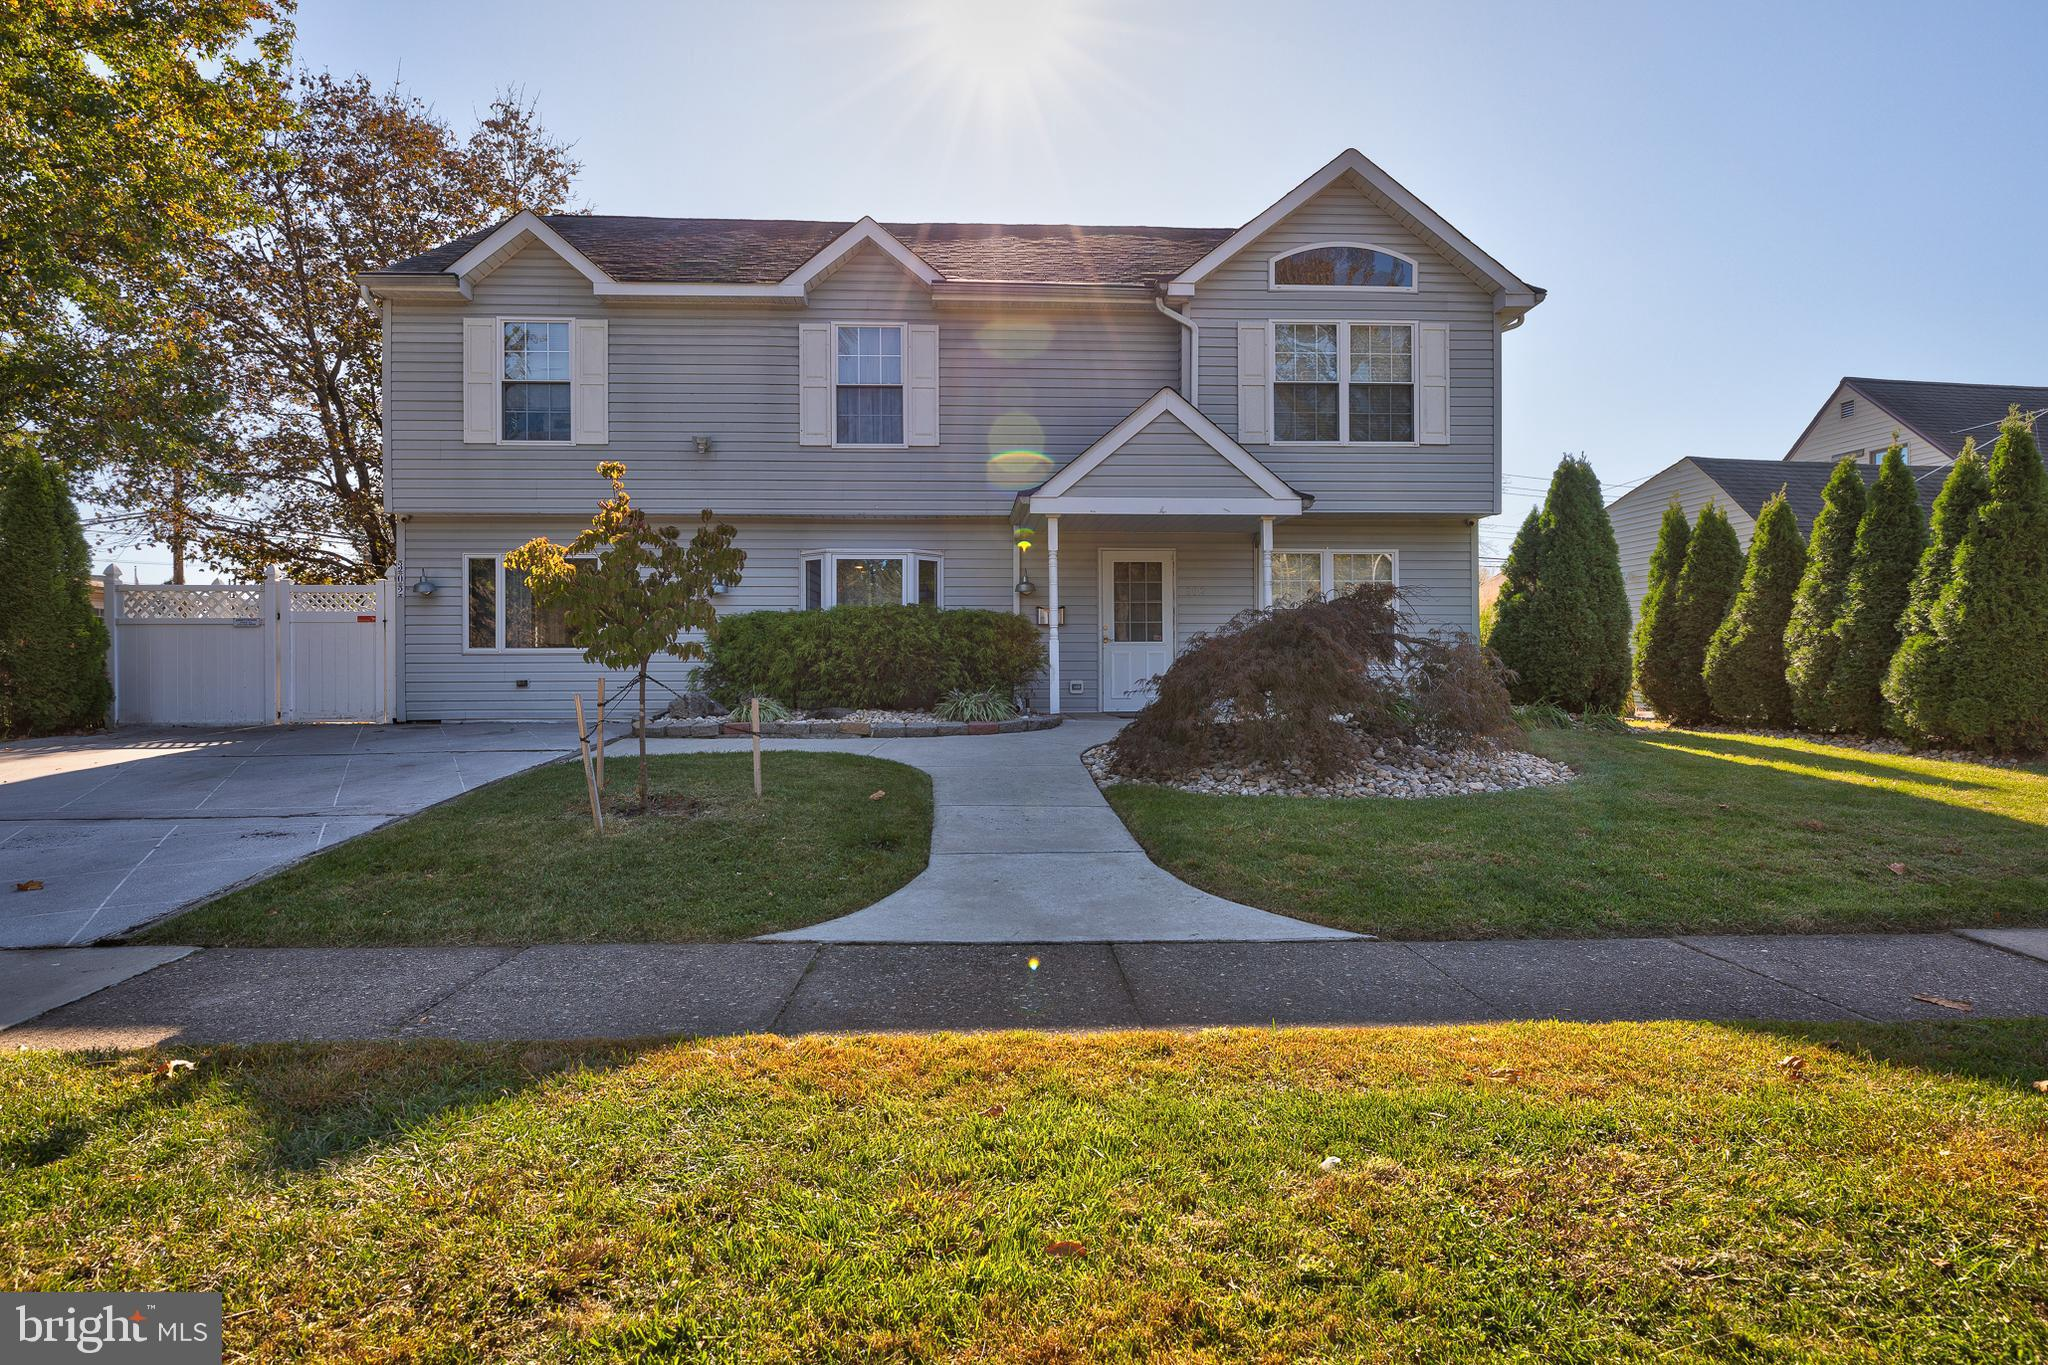 302 MILL DRIVE, LEVITTOWN, PA 19056